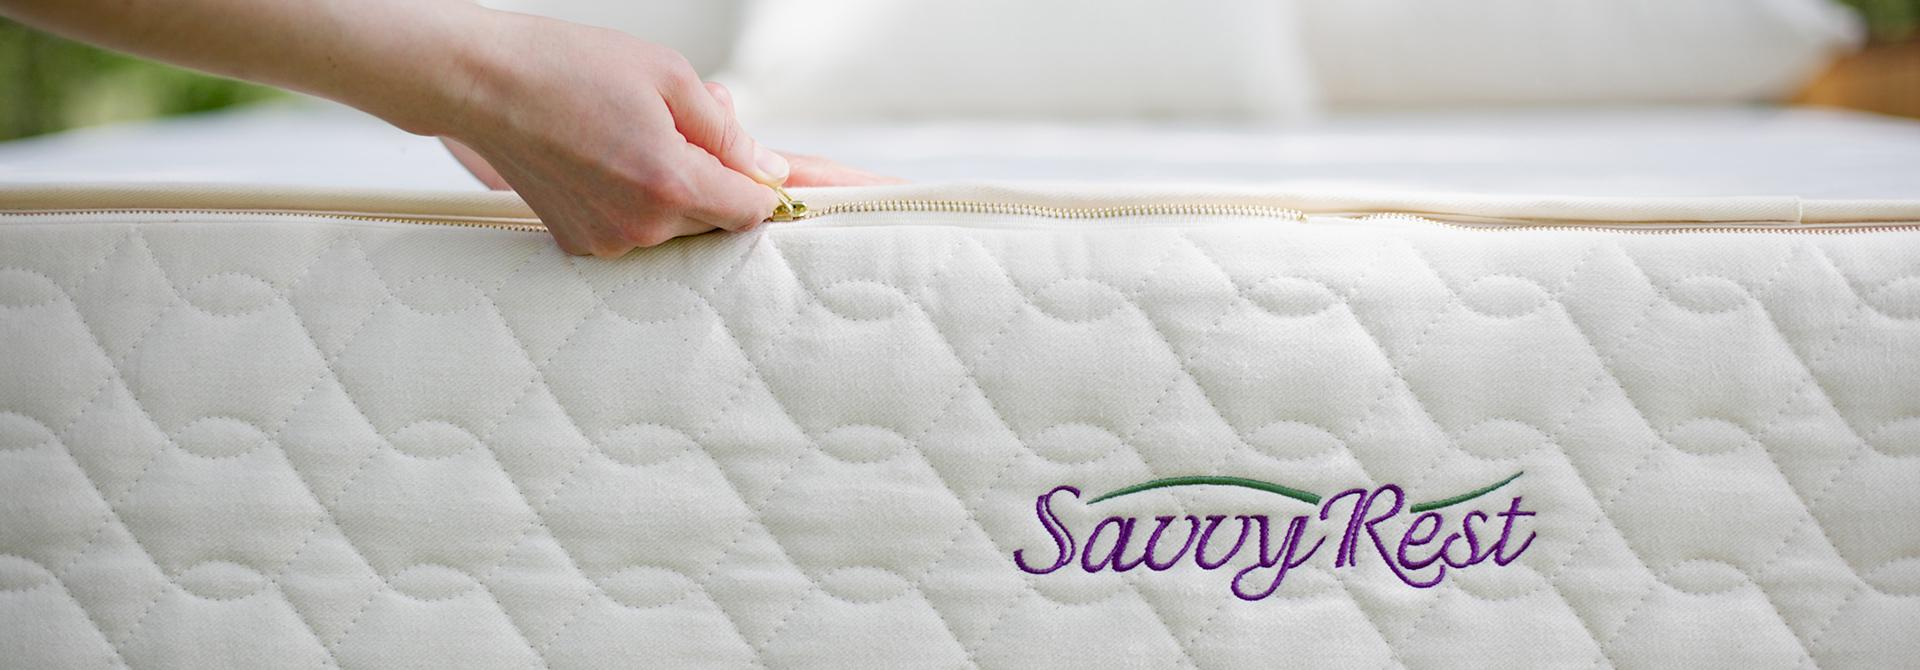 Savvy Rest latex mattress zipped up